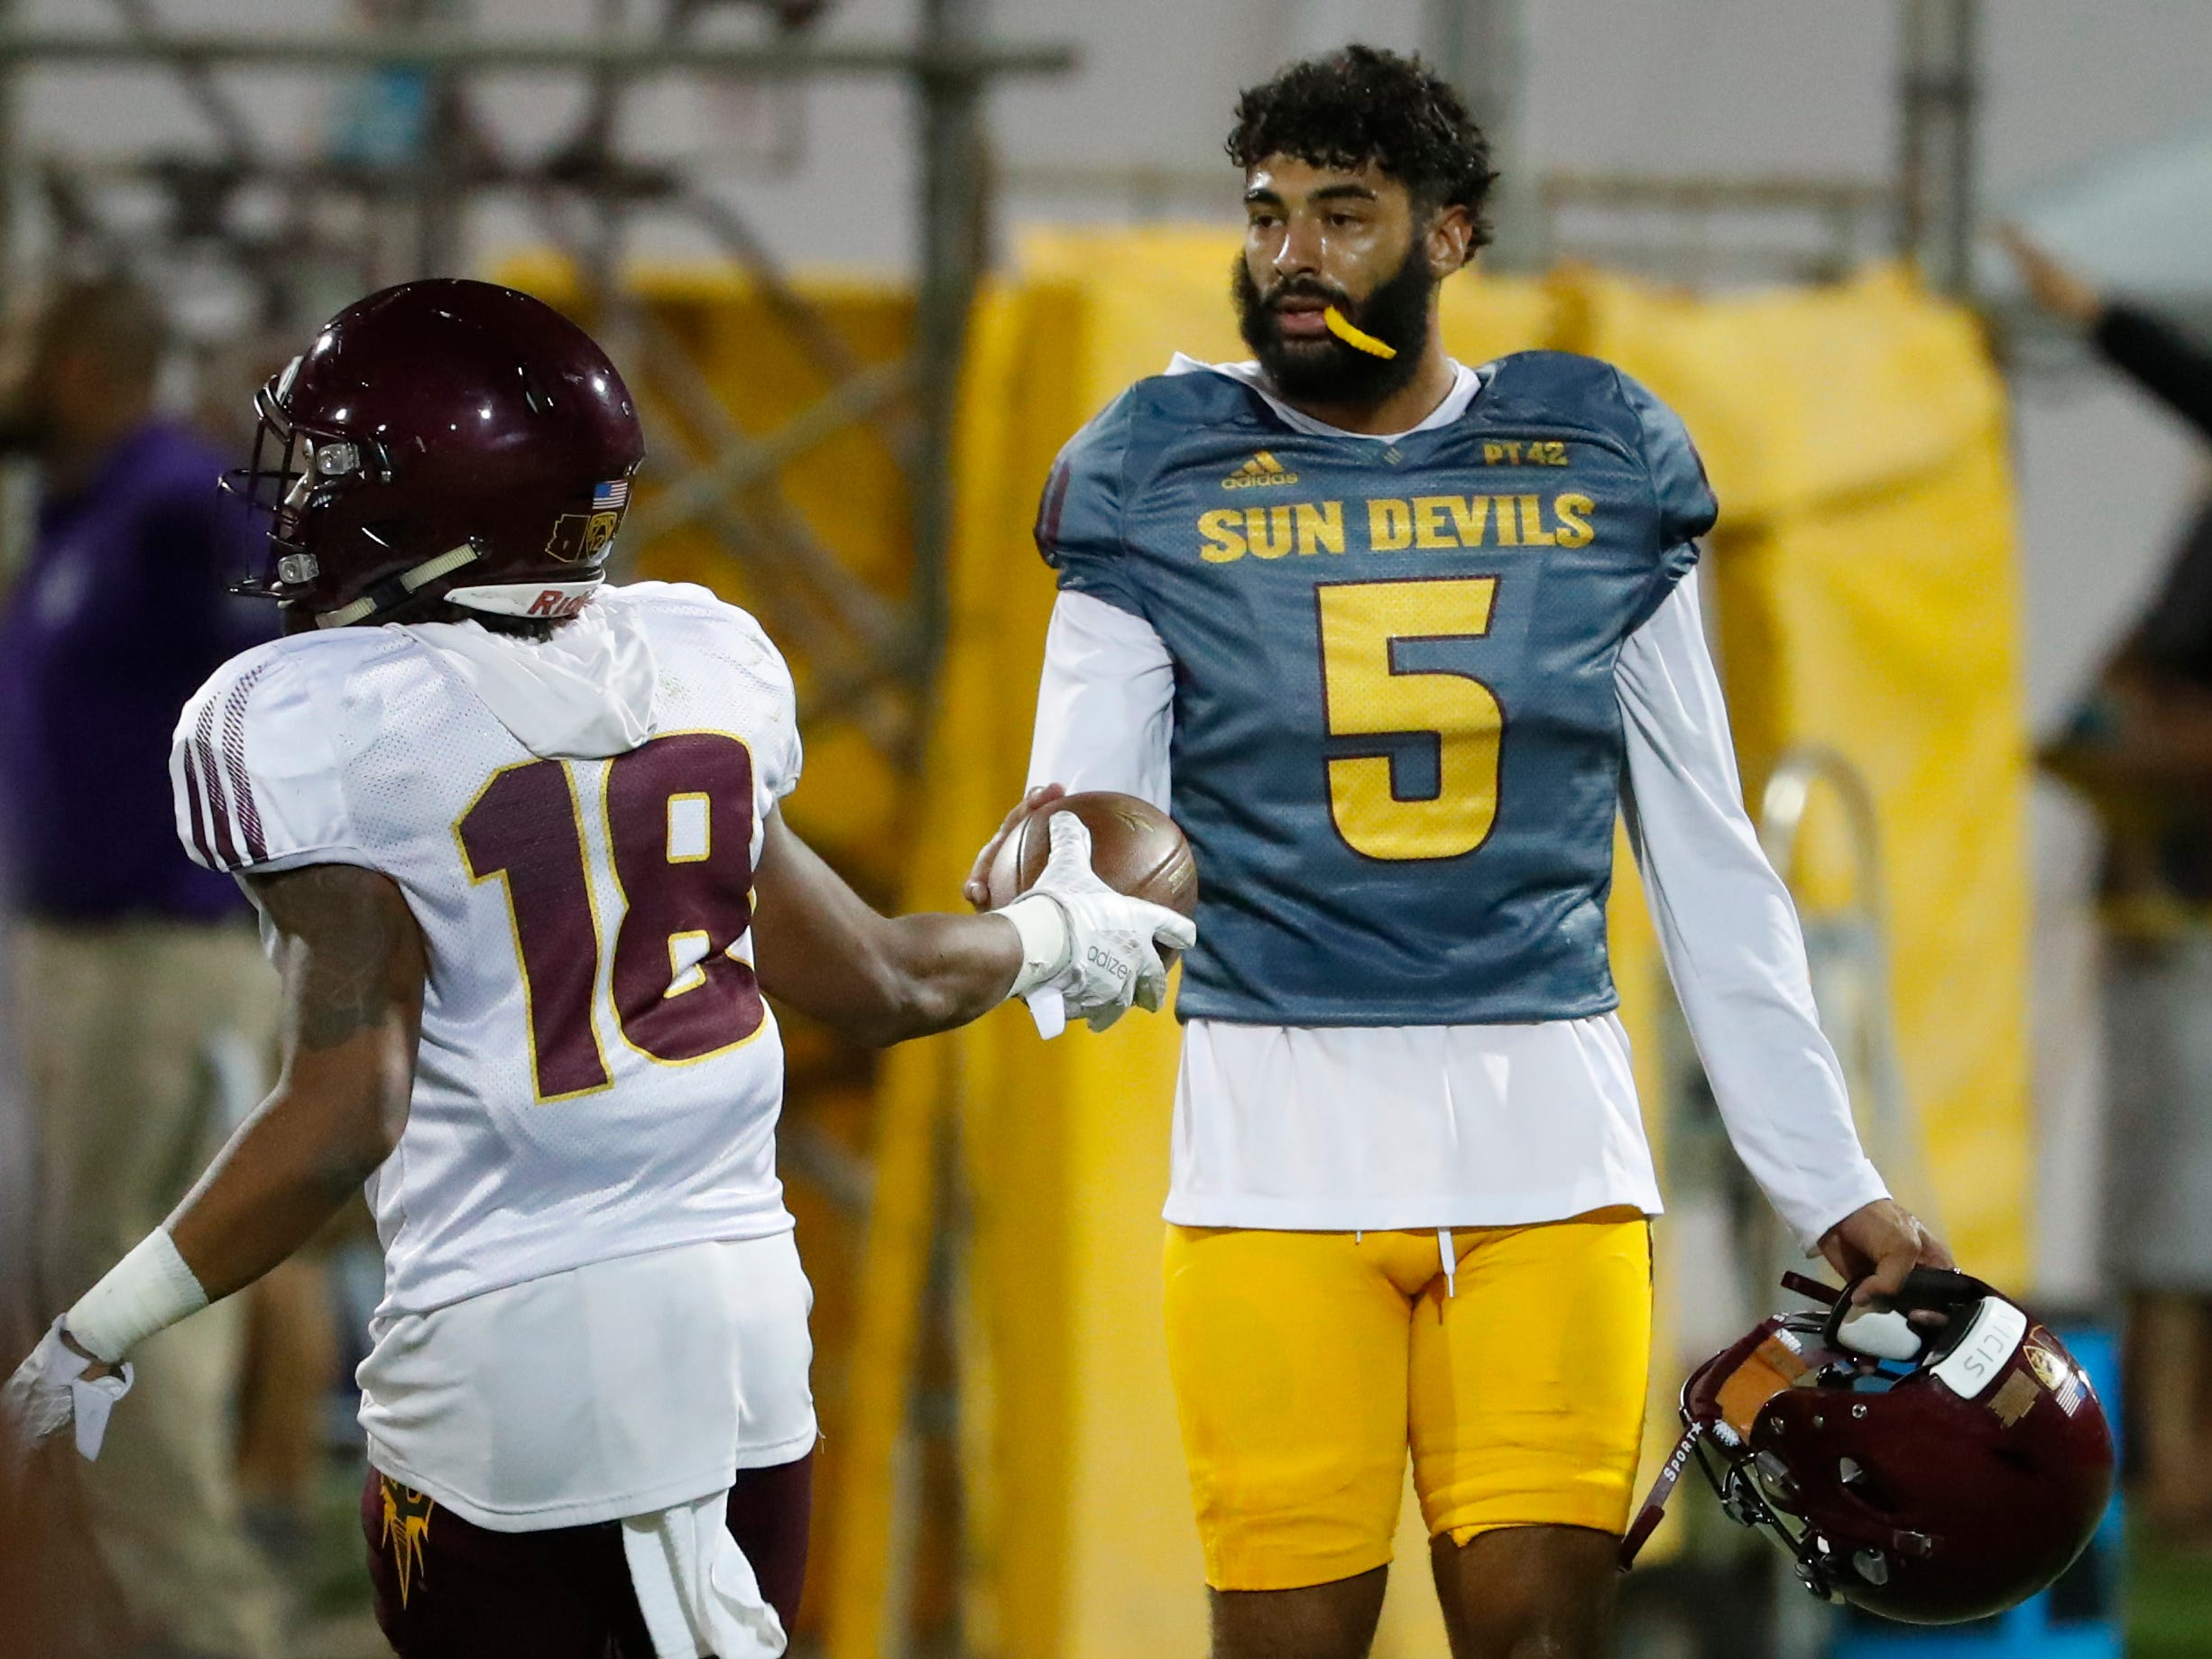 ASU's Langston Frederick (18) hands the ball to quarterback Manny Wilkins after making an interception during the ASU scrimmage at Kajikawa Practice Fields in Tempe, Ariz. on Aug. 11, 2018.